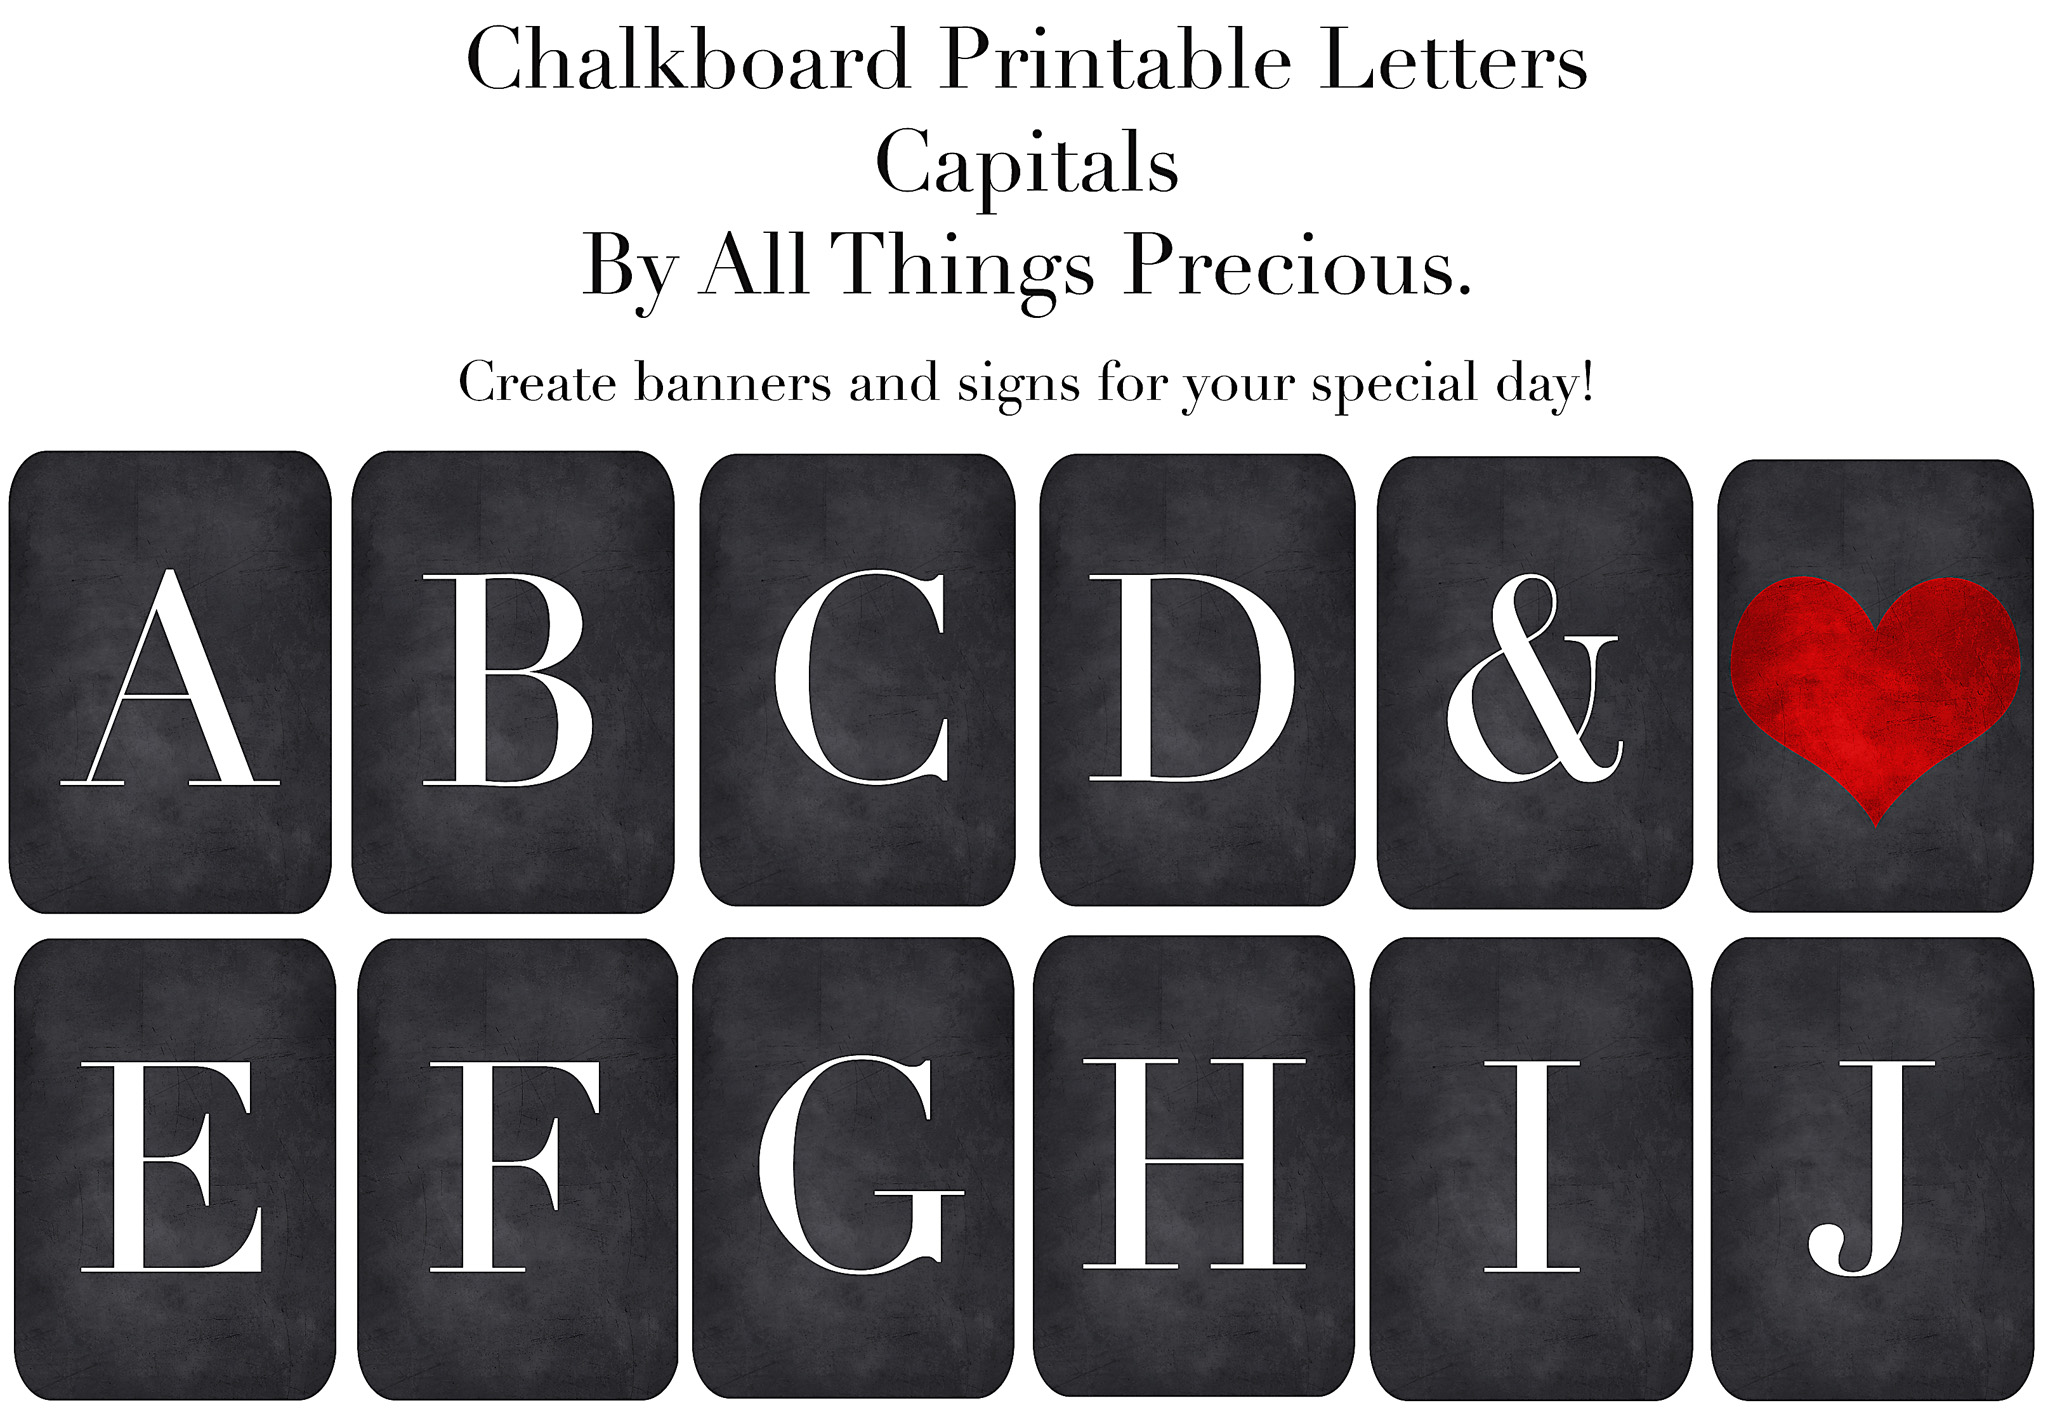 Chalkboard banner letters capitals by allthingsprecious on allthingsprecious chalkboard banner letters capitals by allthingsprecious spiritdancerdesigns Image collections